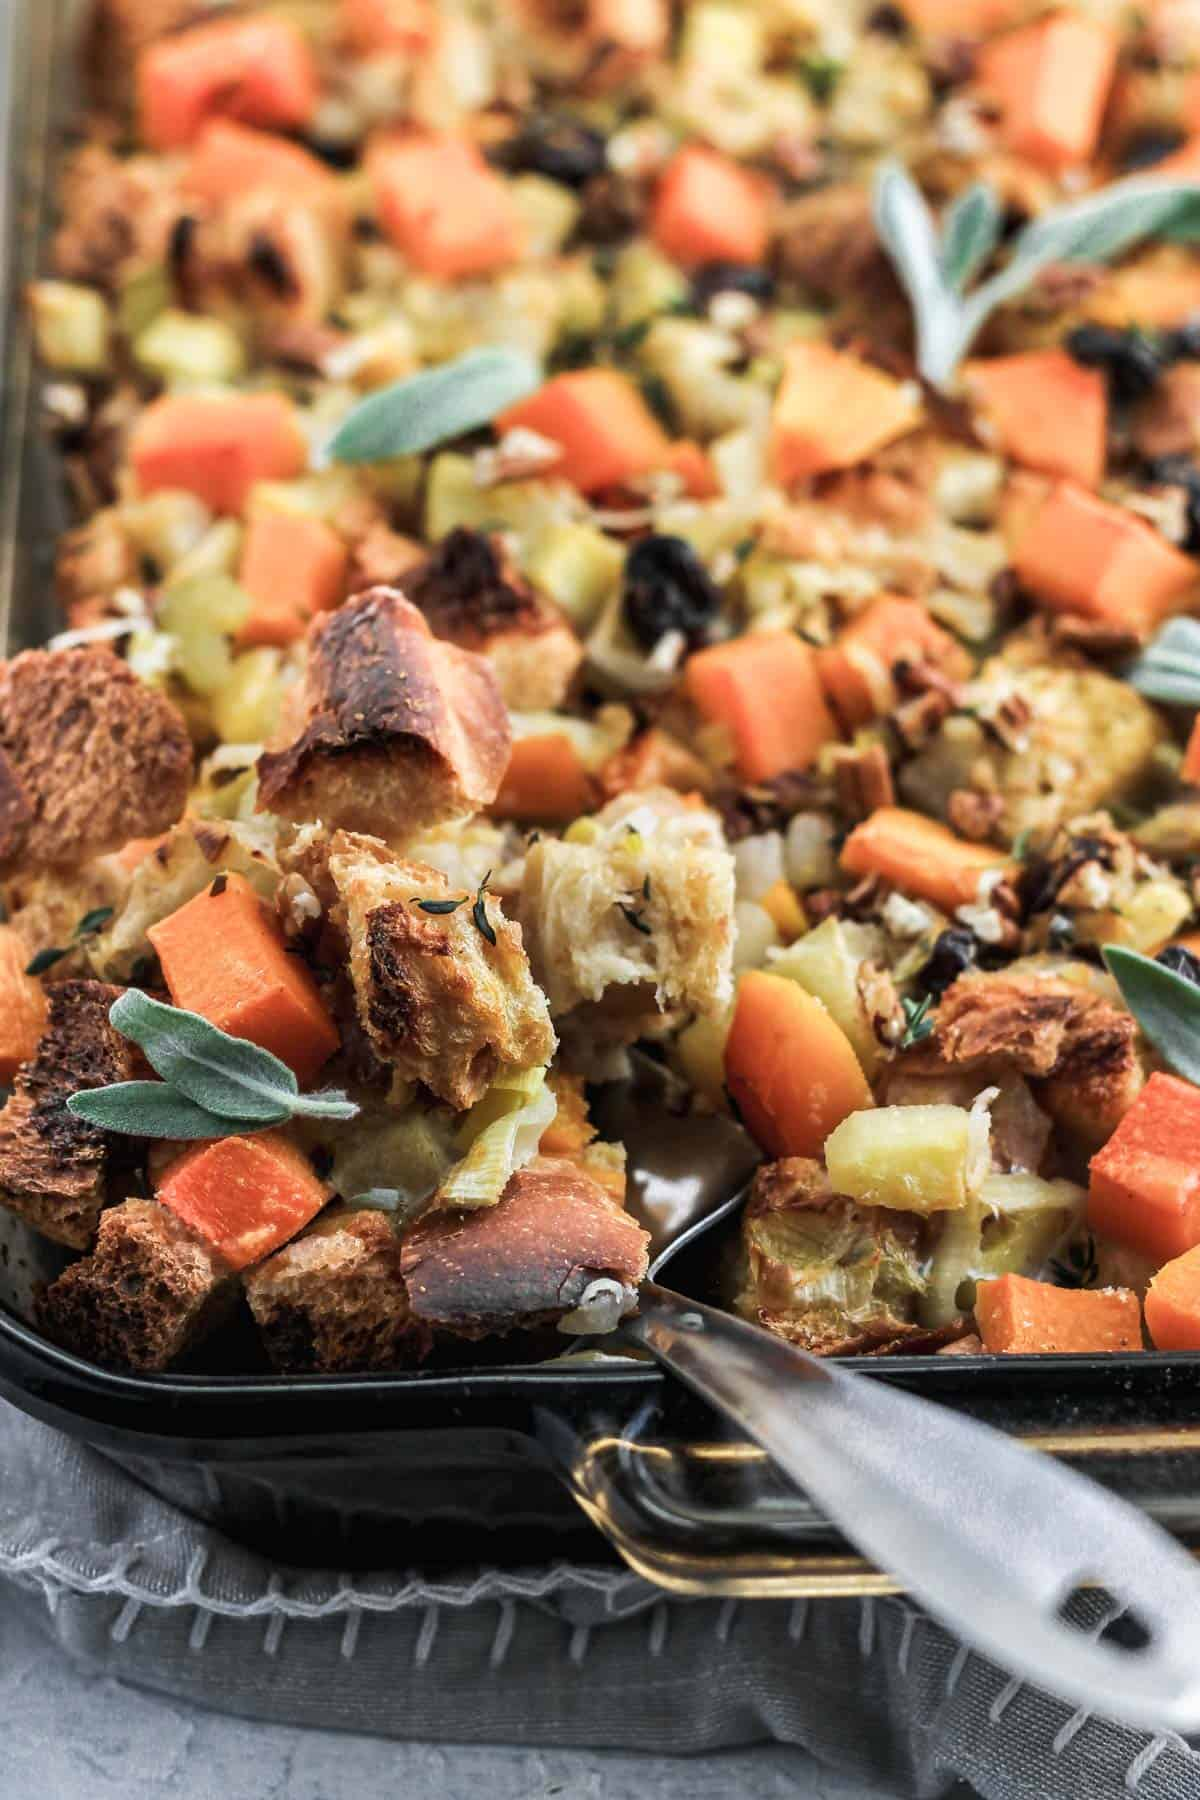 Butternut squash stuffing in a glass dish with a metal spatula scooping out some stuffing.